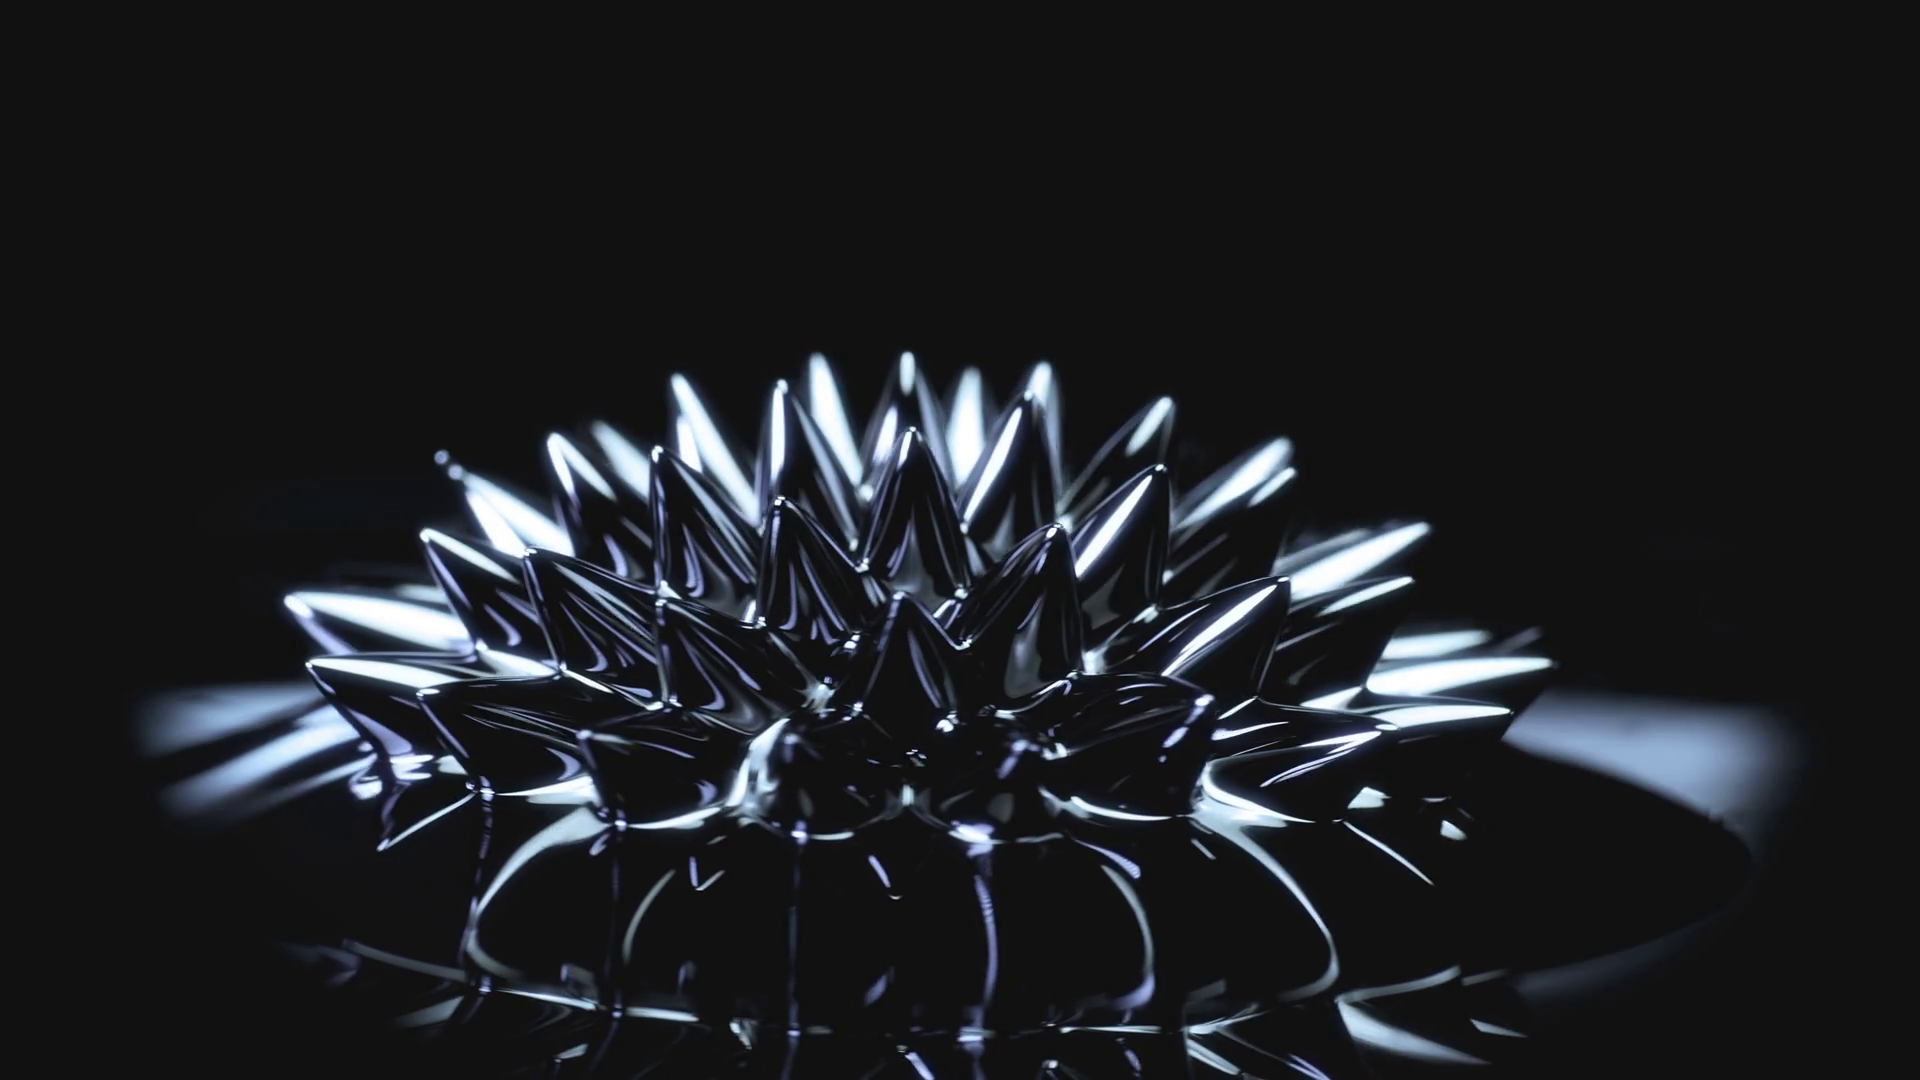 Ferrofluid Black liquid surface Abstract background Stock Video 1920x1080